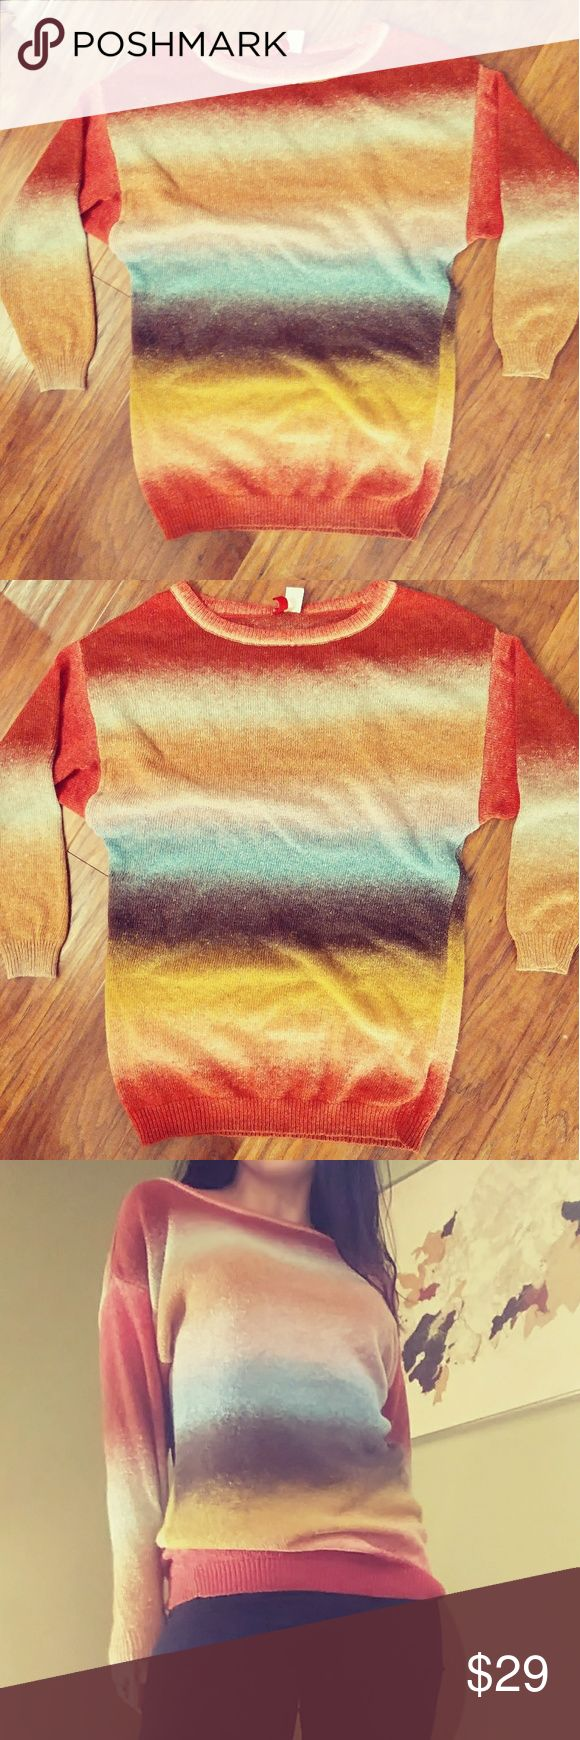 💠DIVIDED SWEATER 💠 Rainbow sweater 💯 acrylic. Excellent condition. Feel free to ask any questions... reference I'm 5'6 135 lbs H&M Sweaters Crew & Scoop Necks